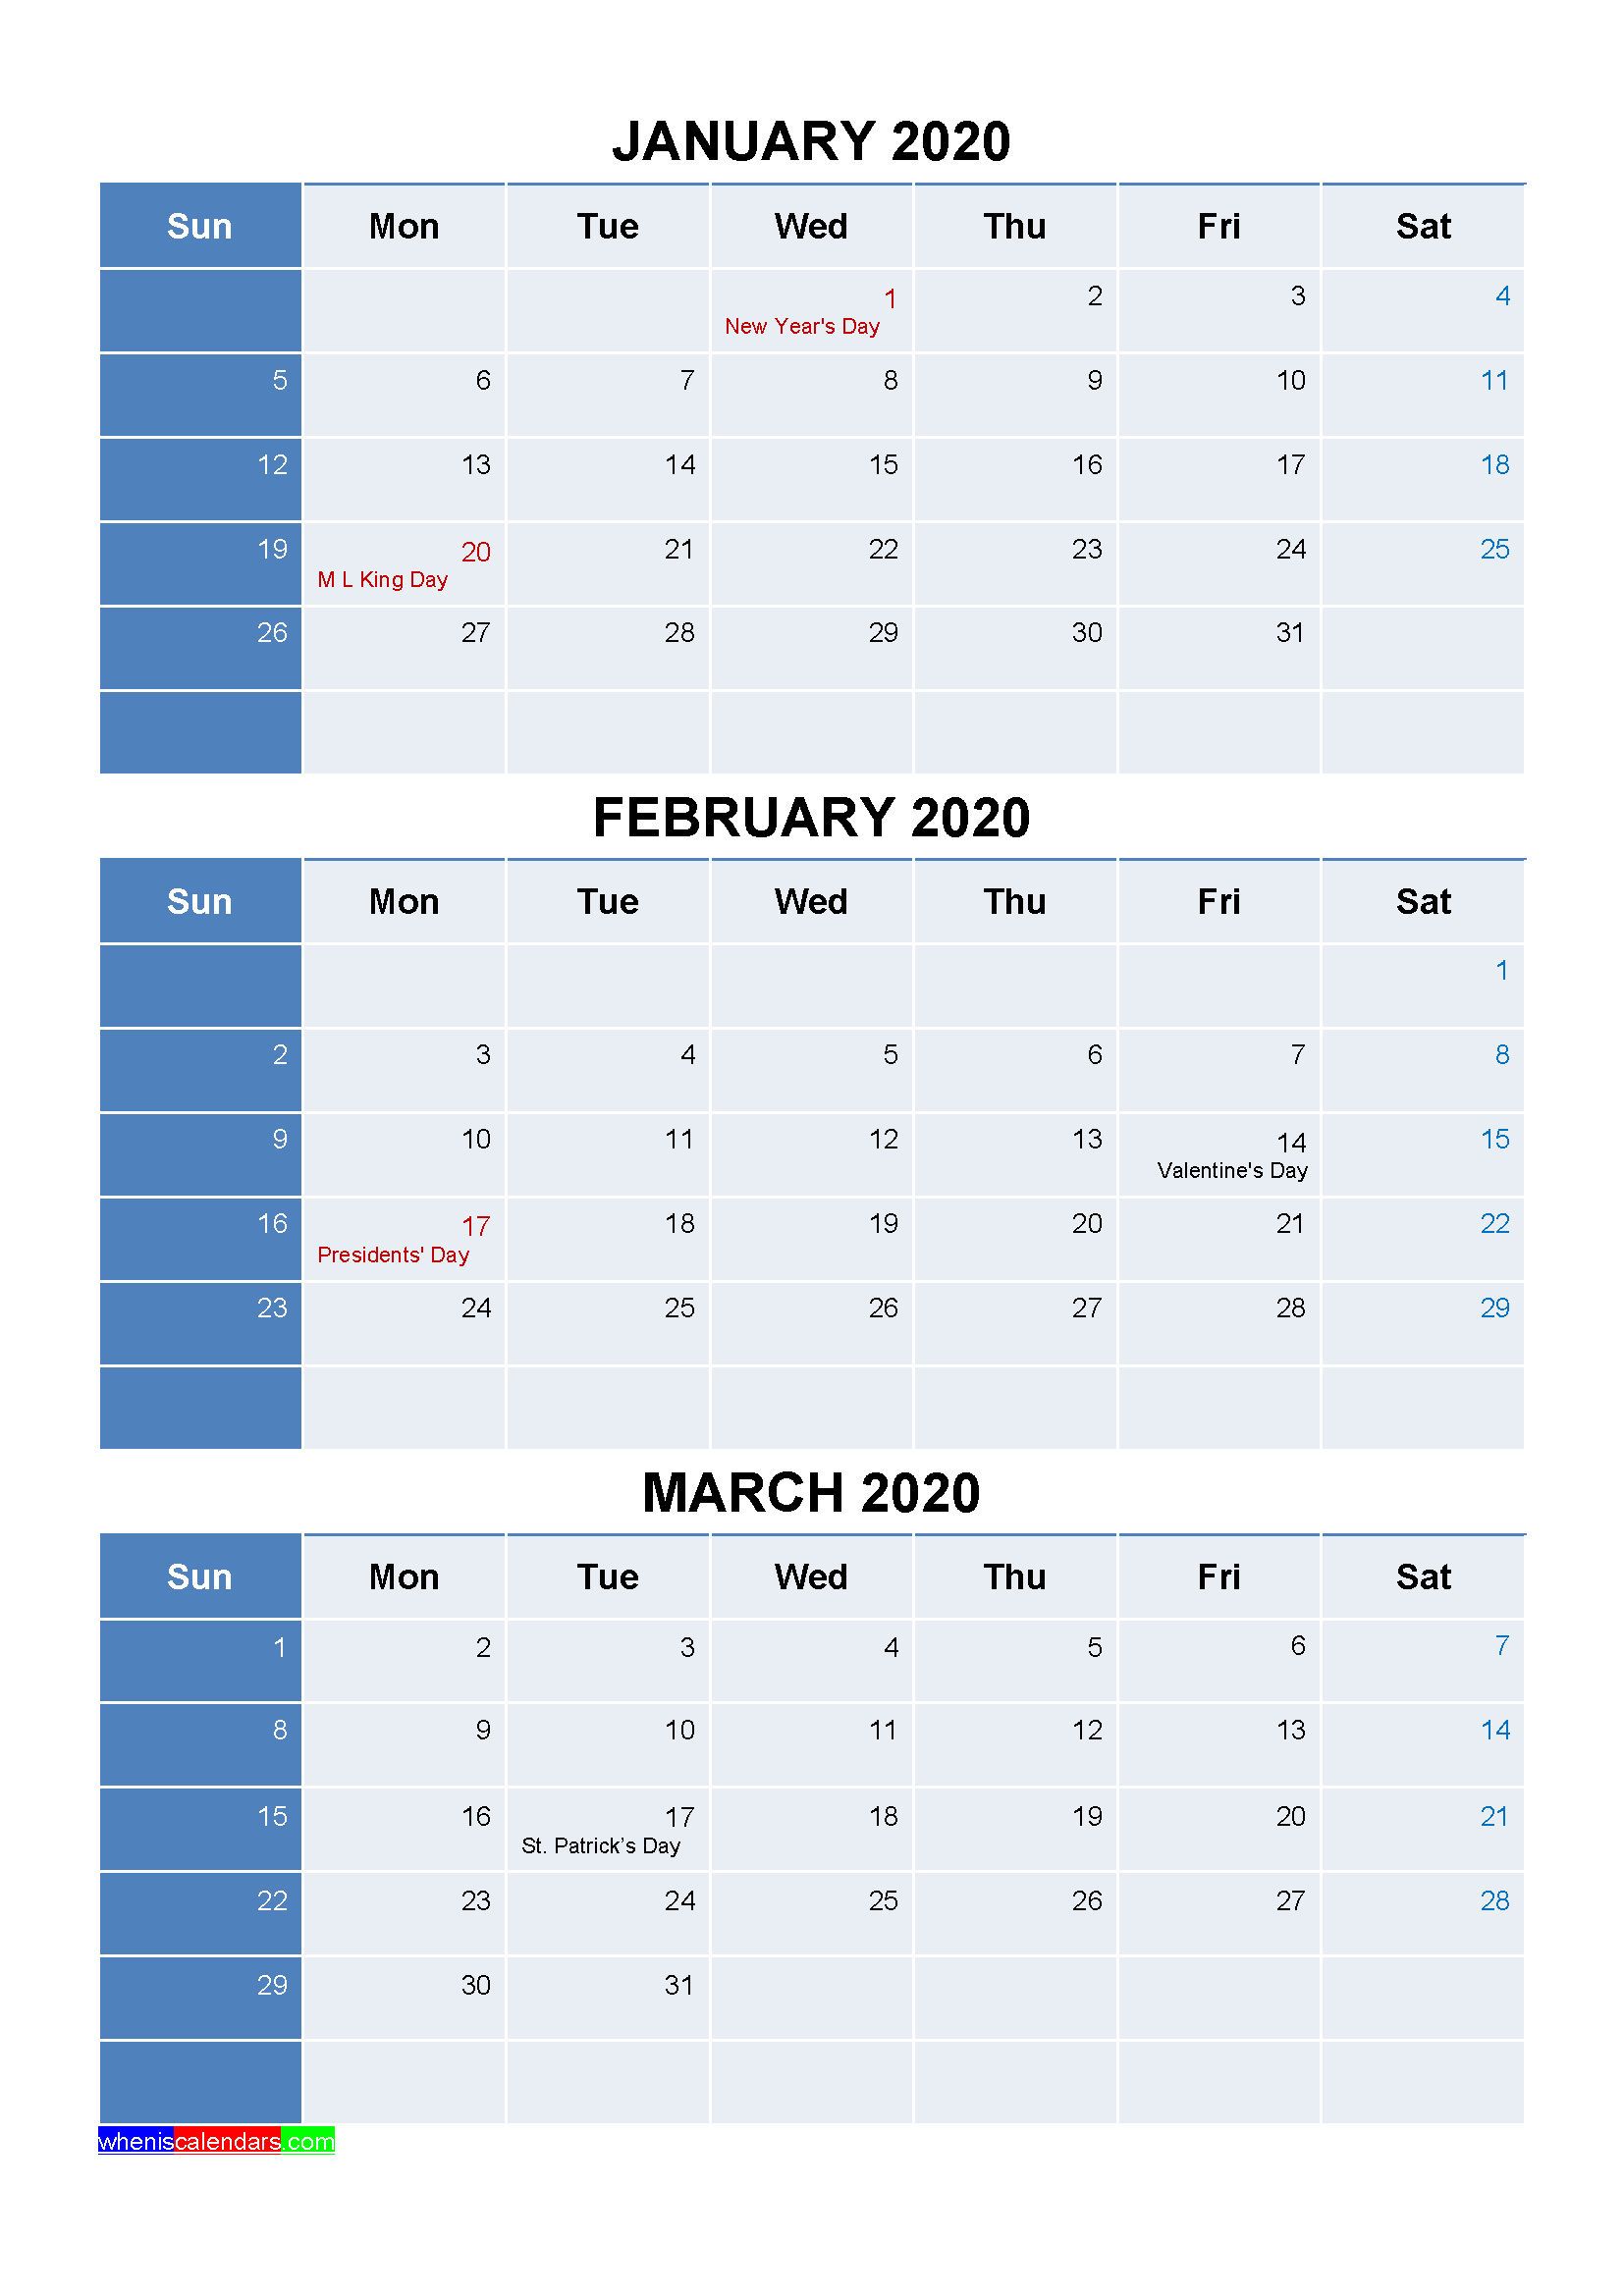 Free January February March 2020 Calendar with Holidays